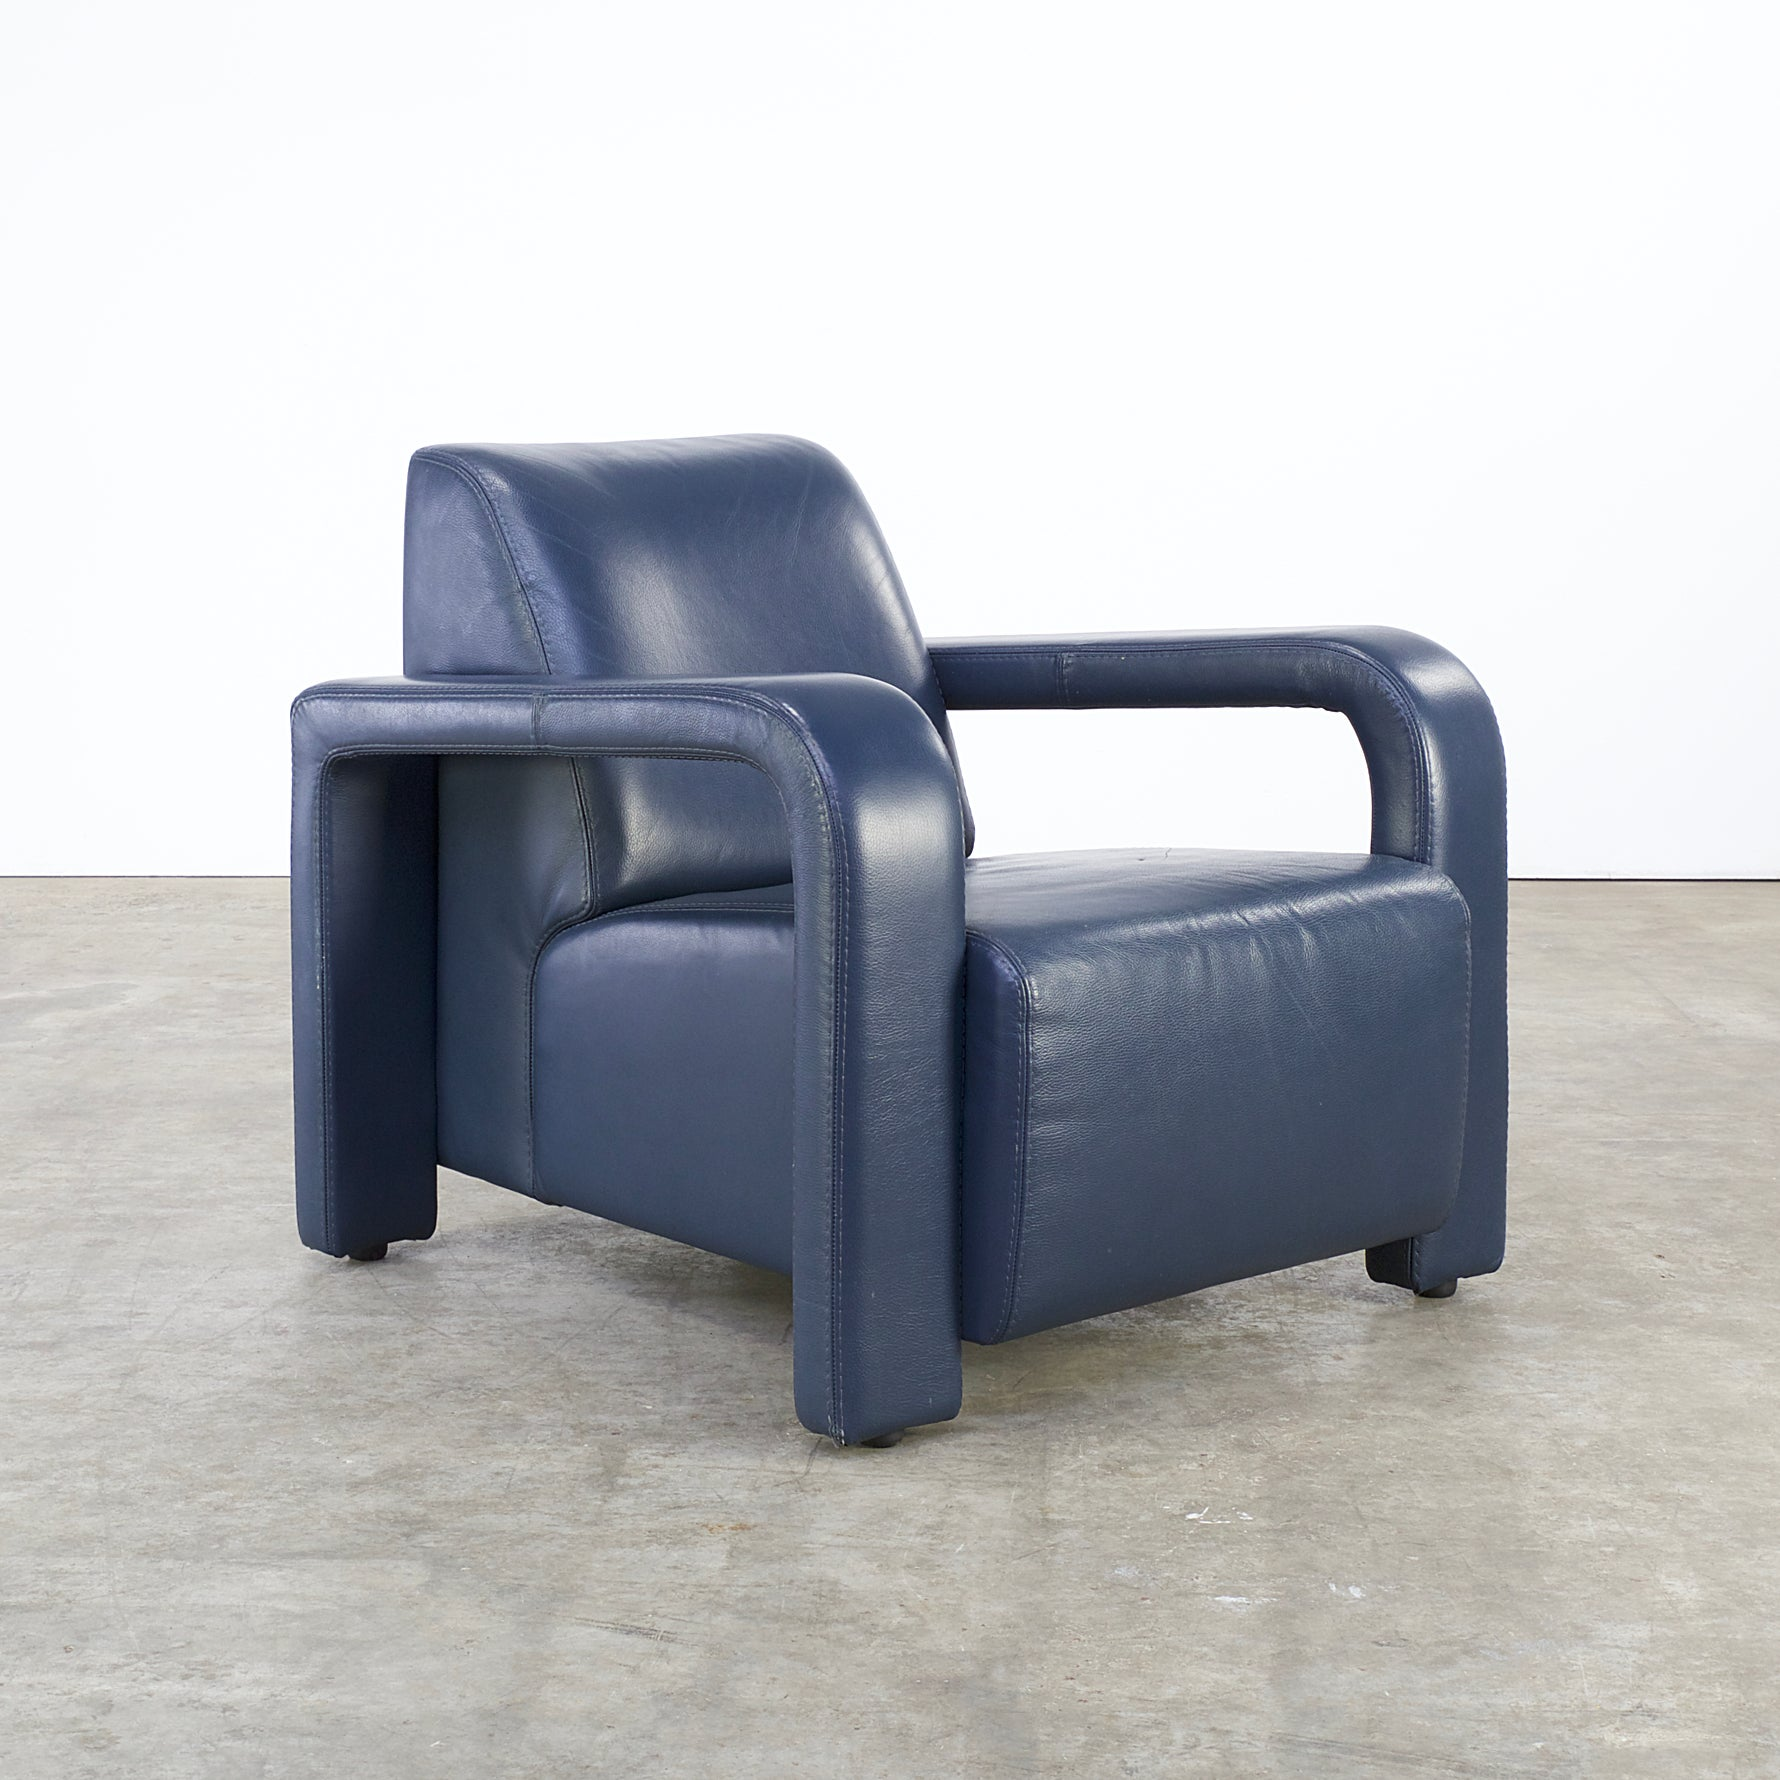 Lounge Stoel Retro.80s Lounge Chair For Marinelli Italy For Sale At 1stdibs